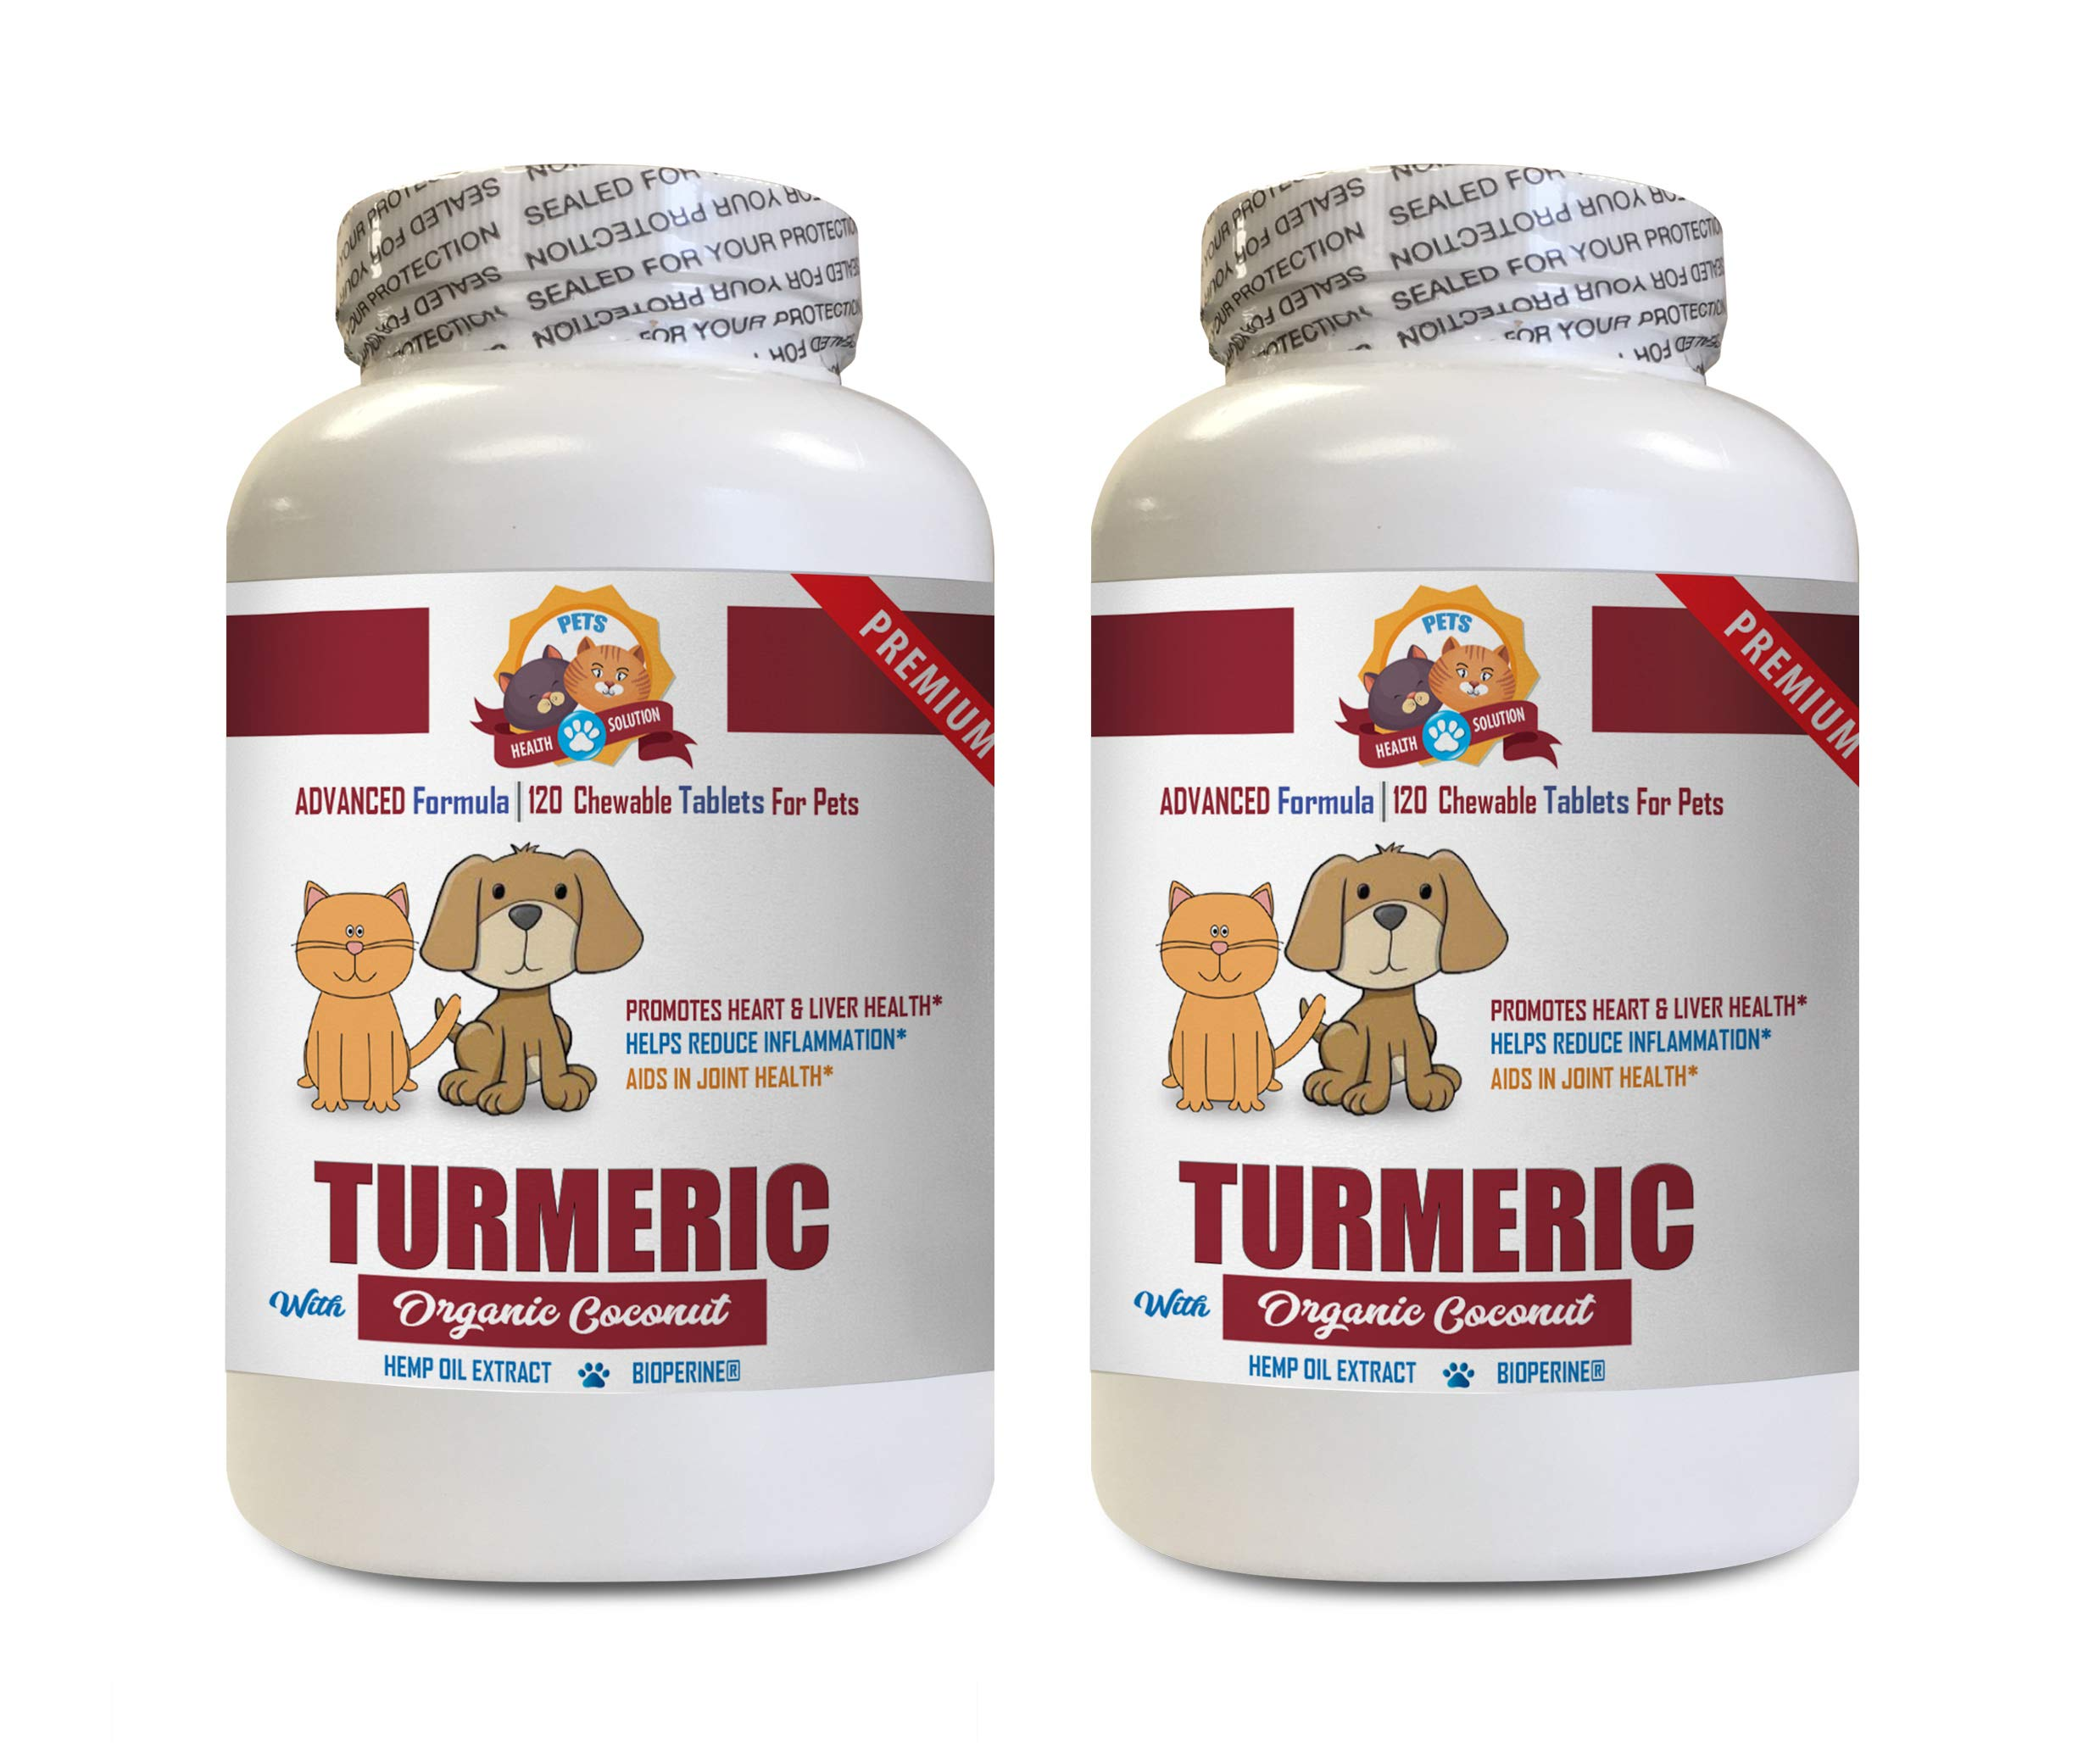 Dog Anxiety Pills - Pets Turmeric with Organic Coconut Oil - Dogs and Cats - Added Hemp Oil Extract - Powerful - Turmeric Extract for Cats - 2 Bottles (240 Treats) by PETS HEALTH SOLUTION